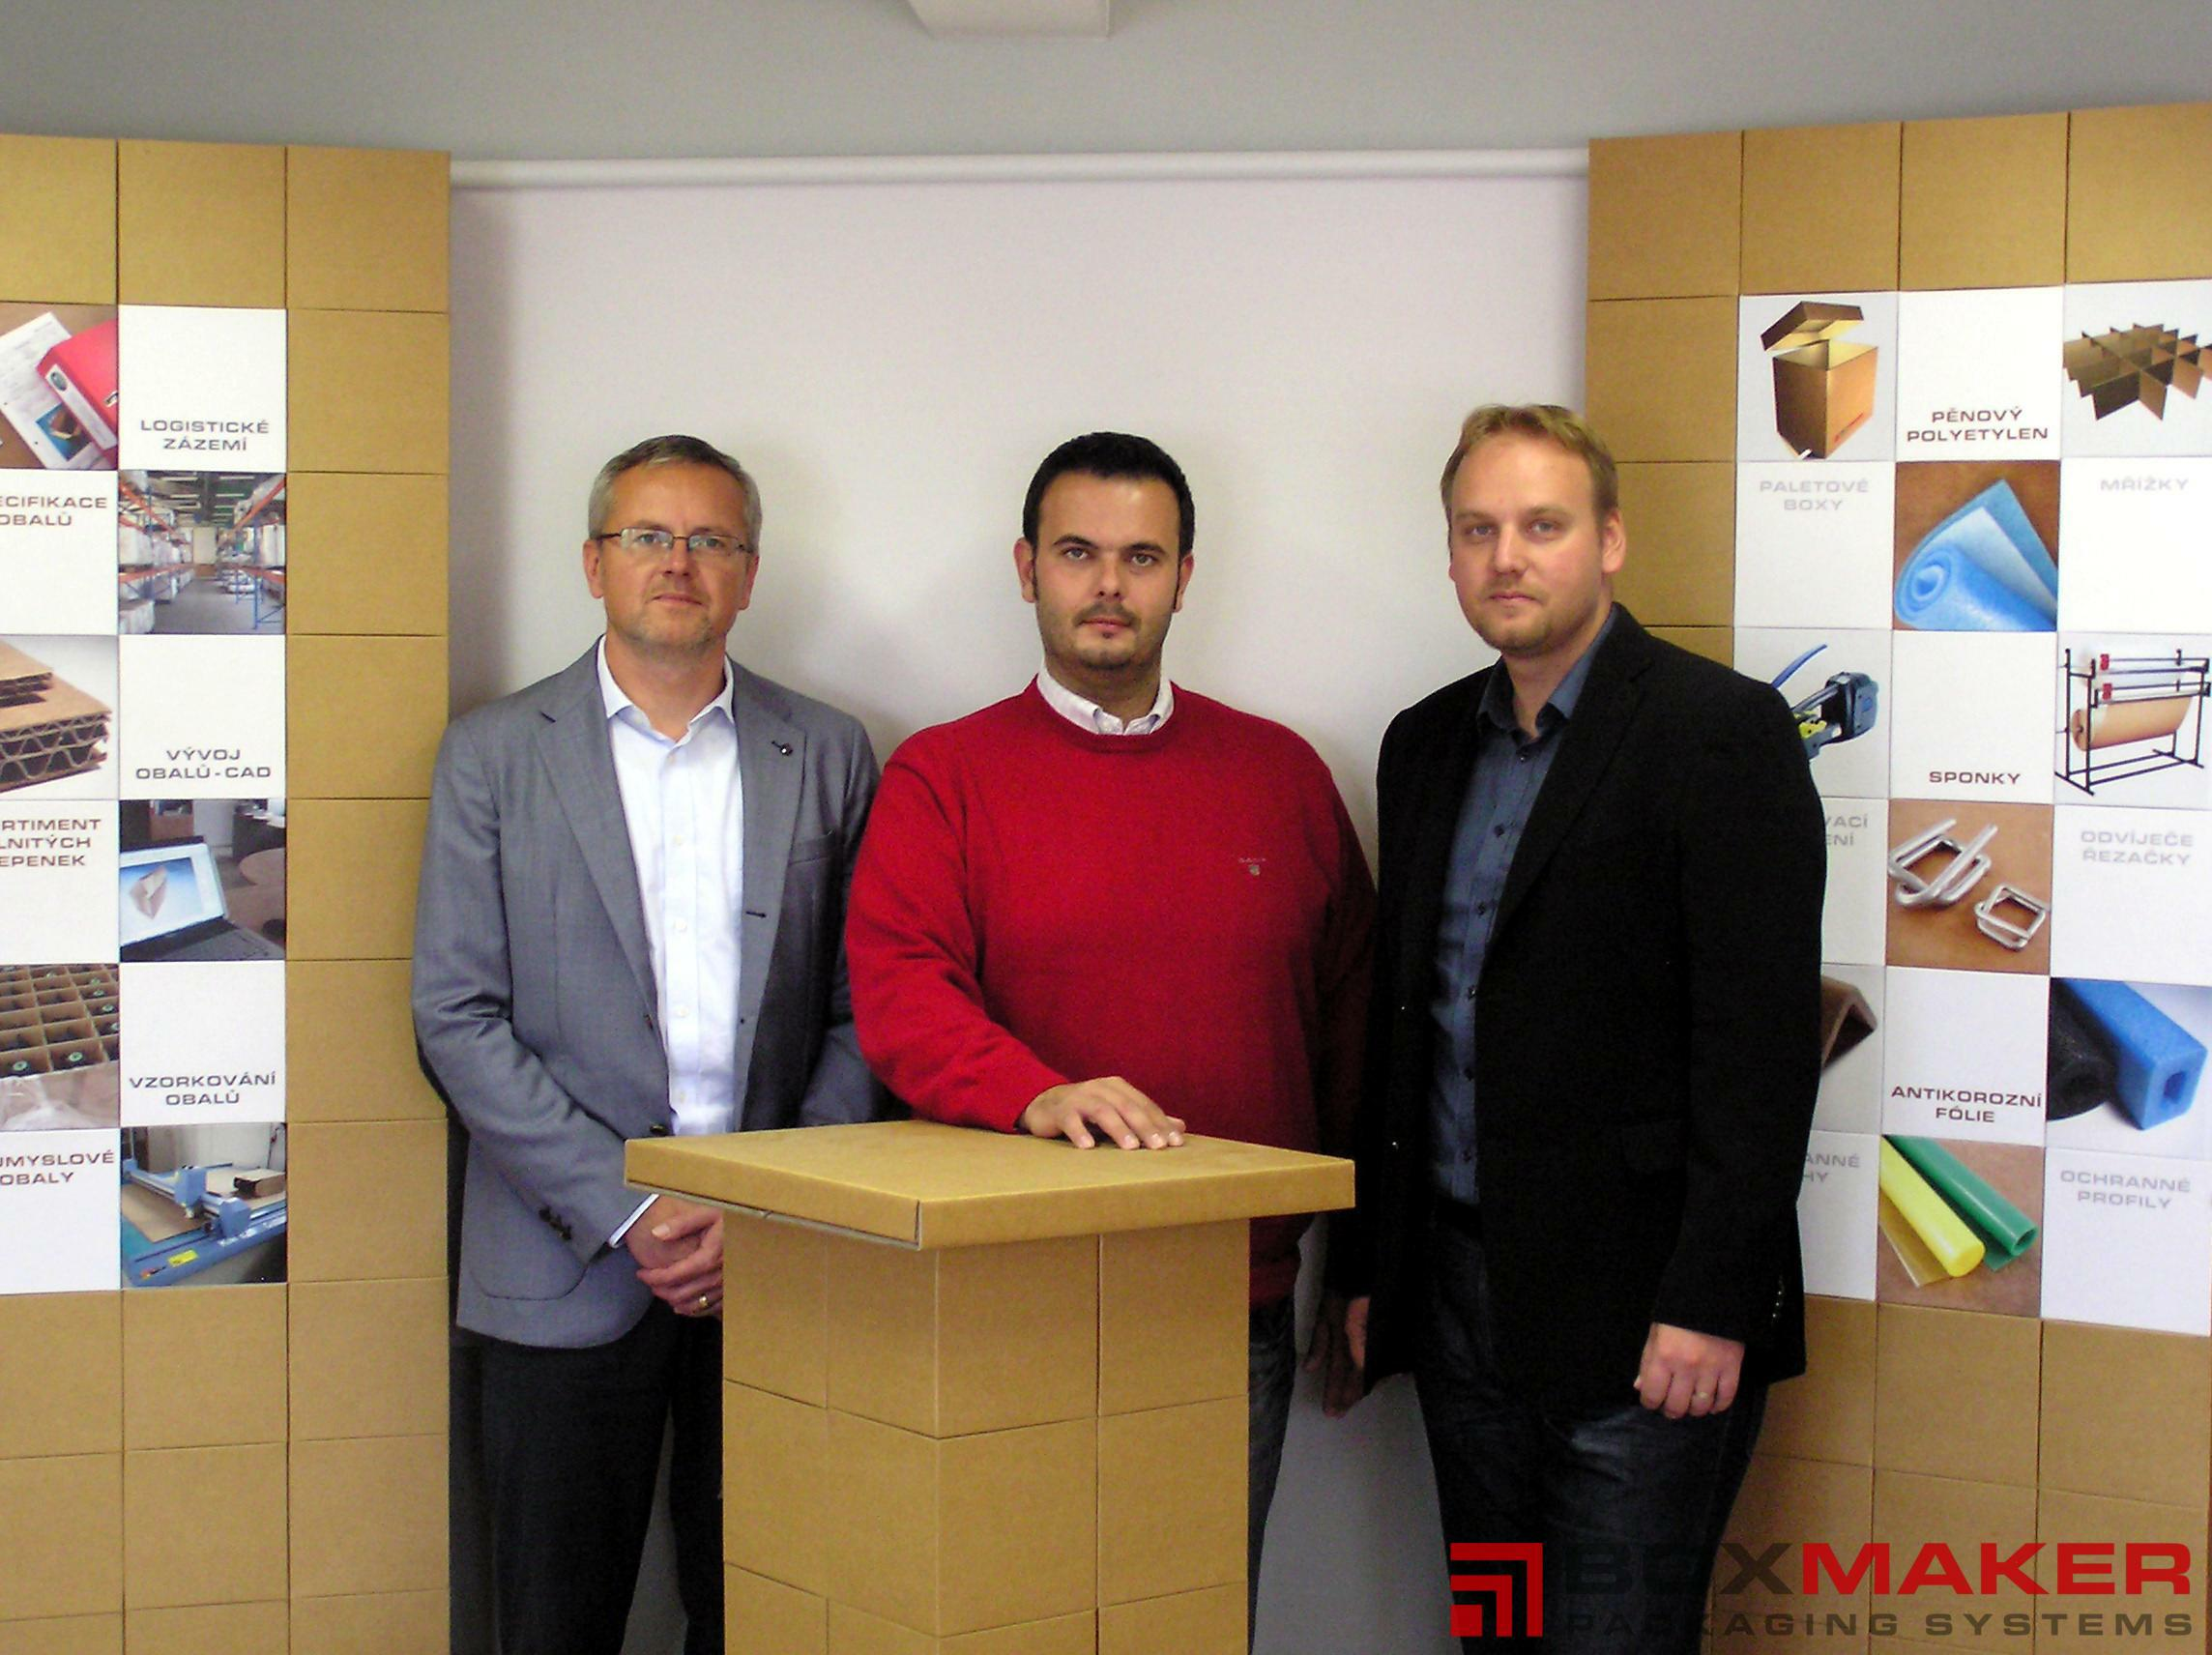 Boxmaker management 2014